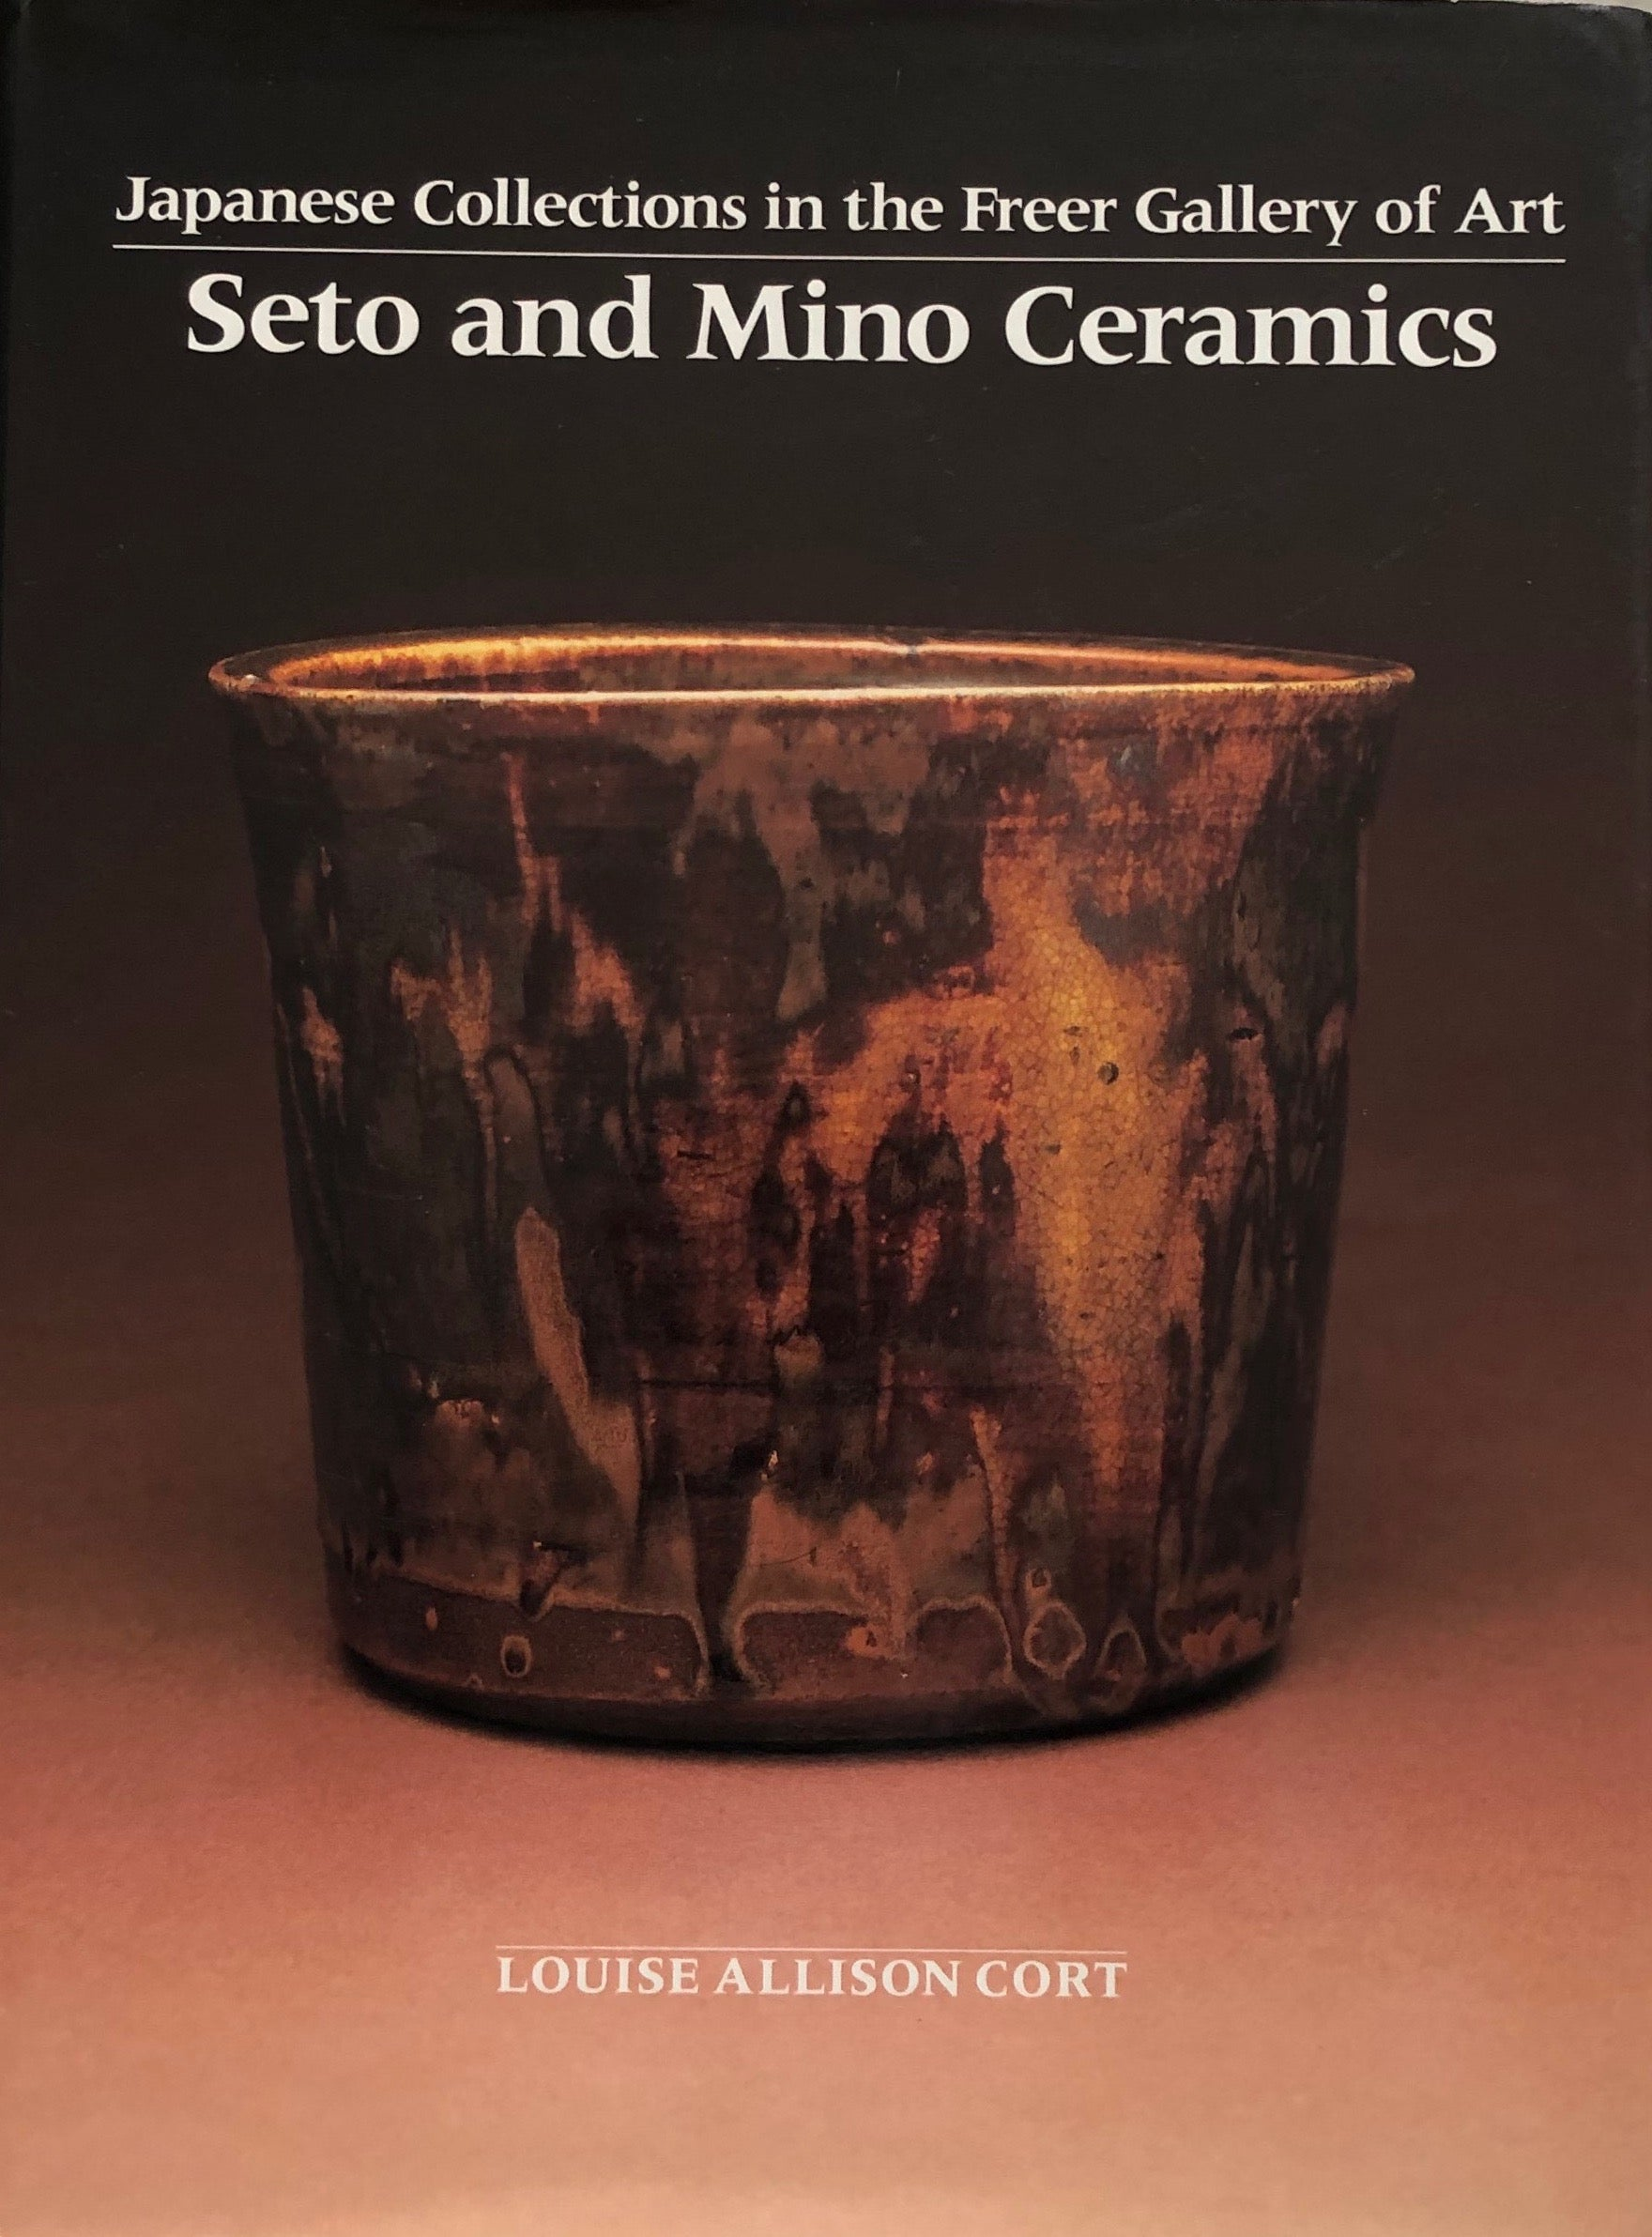 Seto and Mino Ceramics by Louise Allison Cort